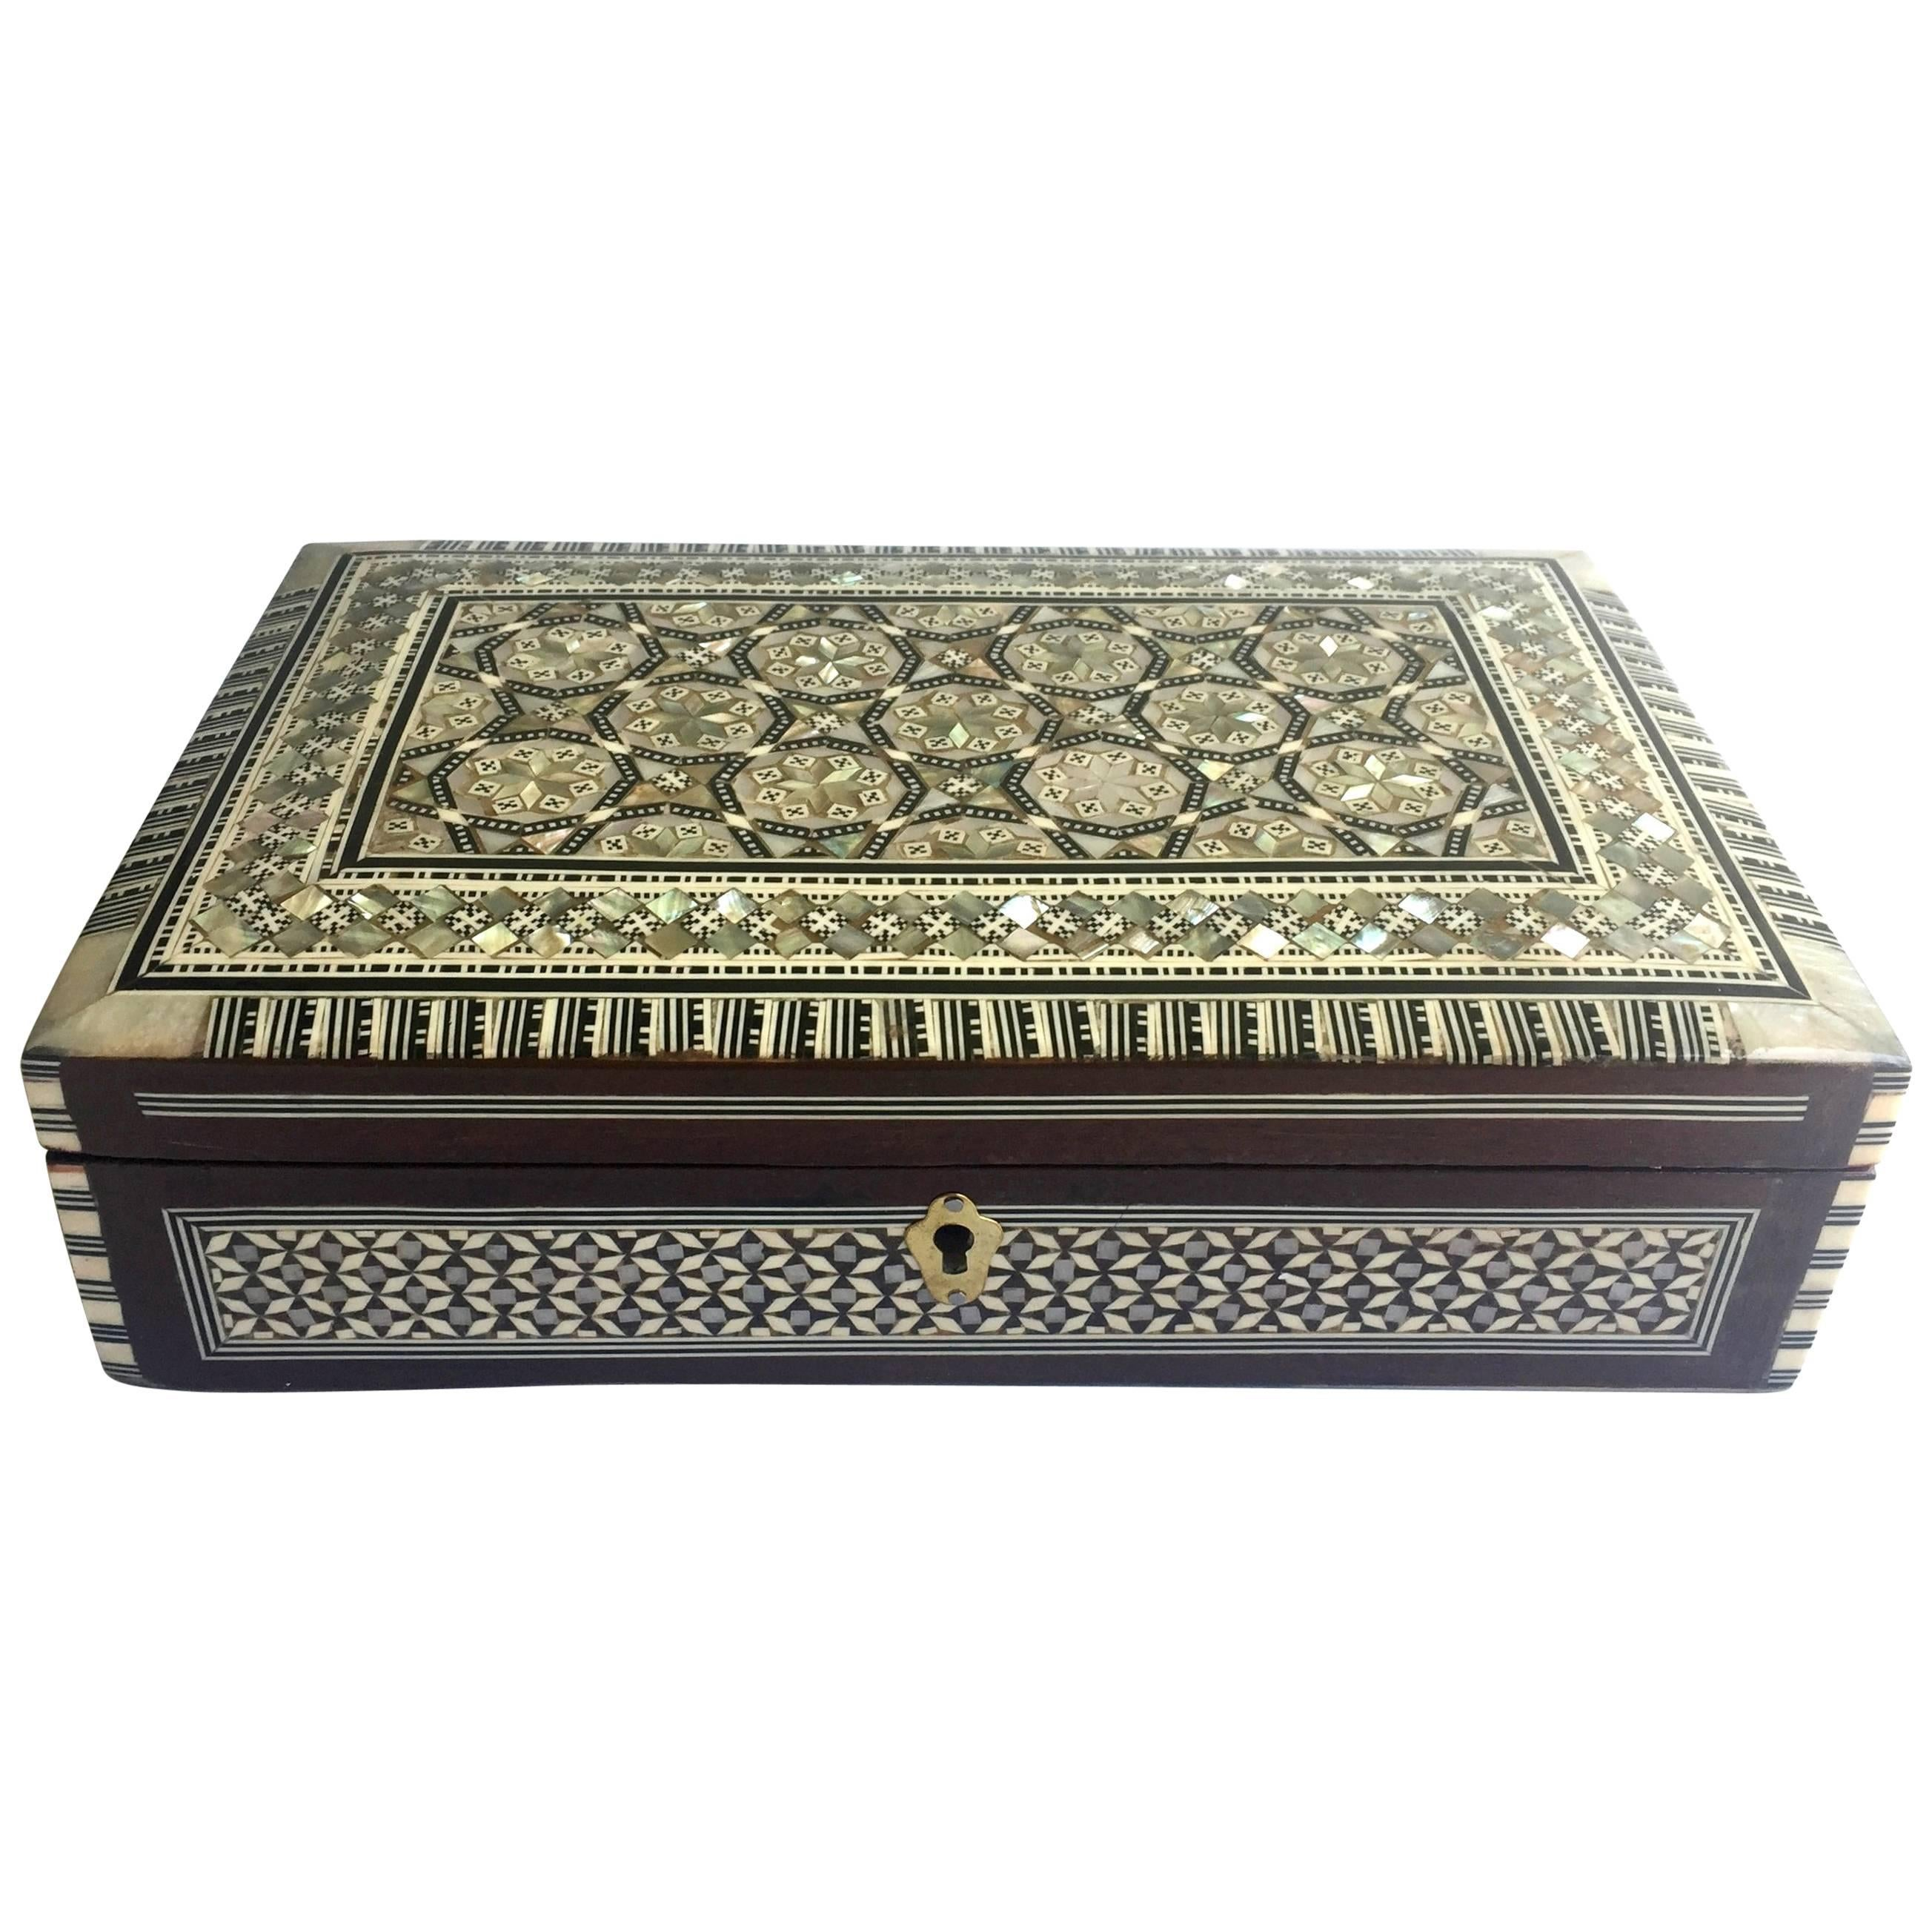 MotherofPearl Jewelry Box Inlaid Box with Key For Sale at 1stdibs